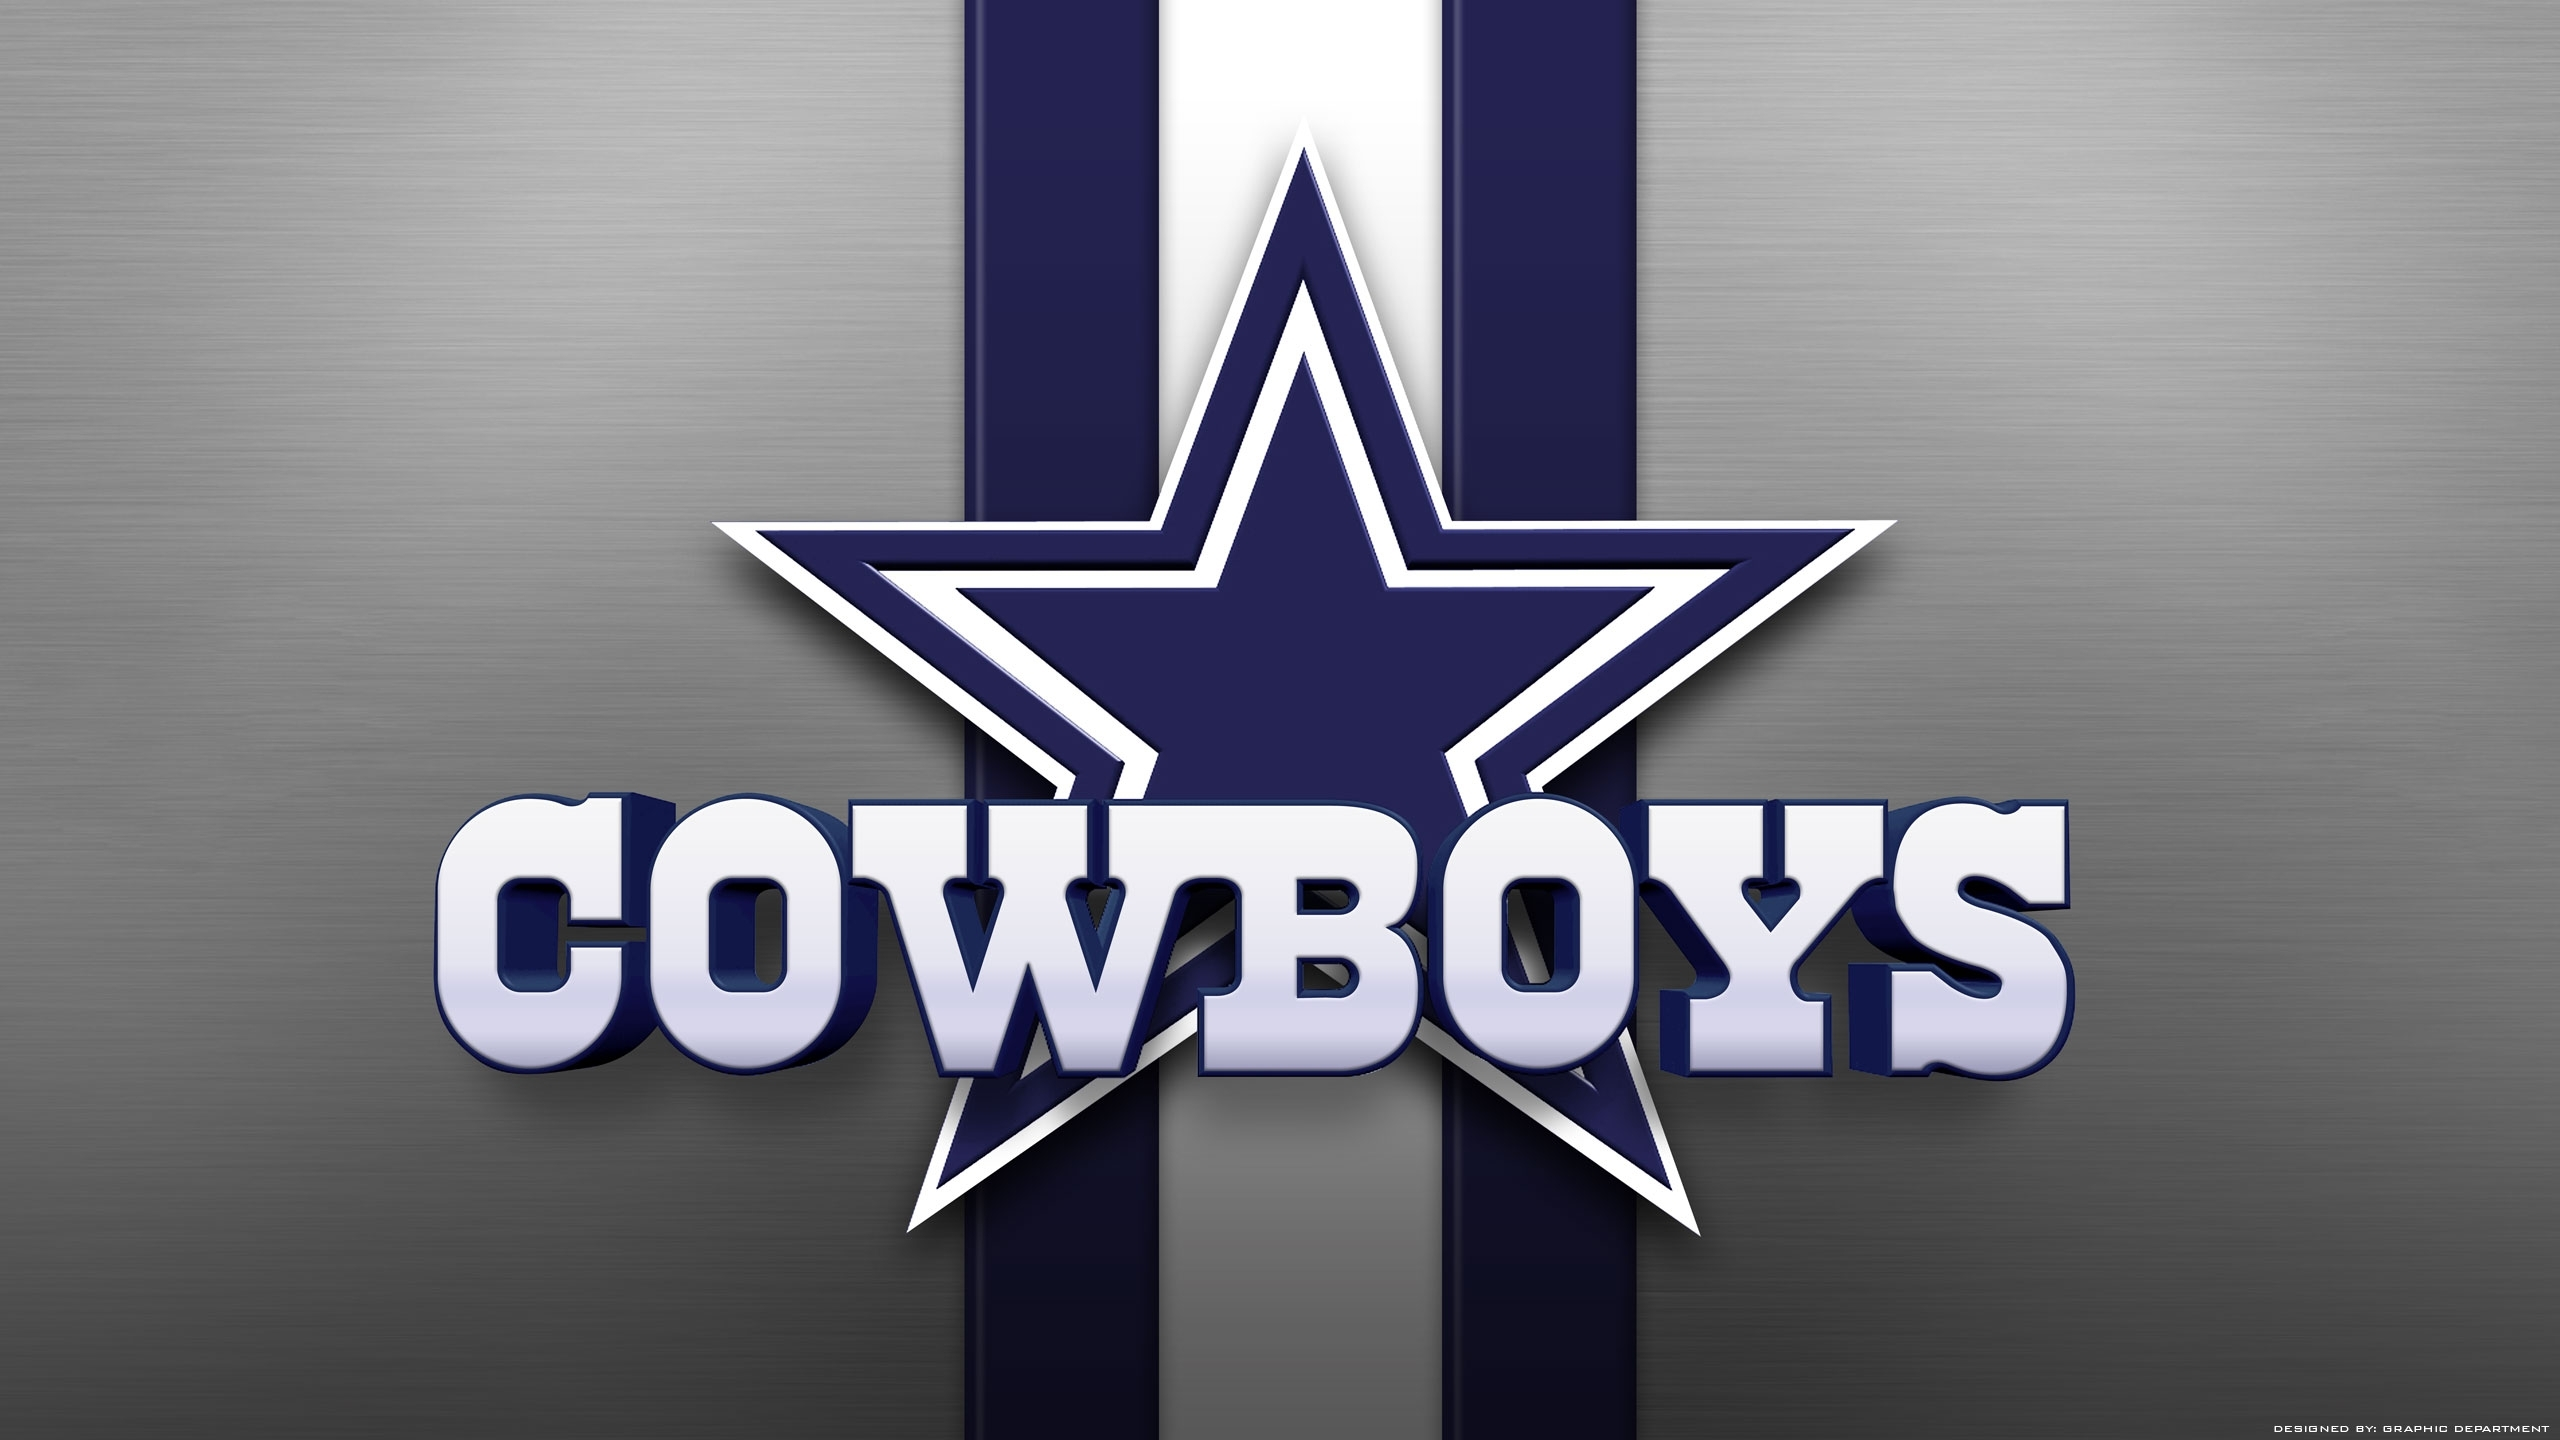 good photos: dallas cowboys images, amazing dallas cowboys images